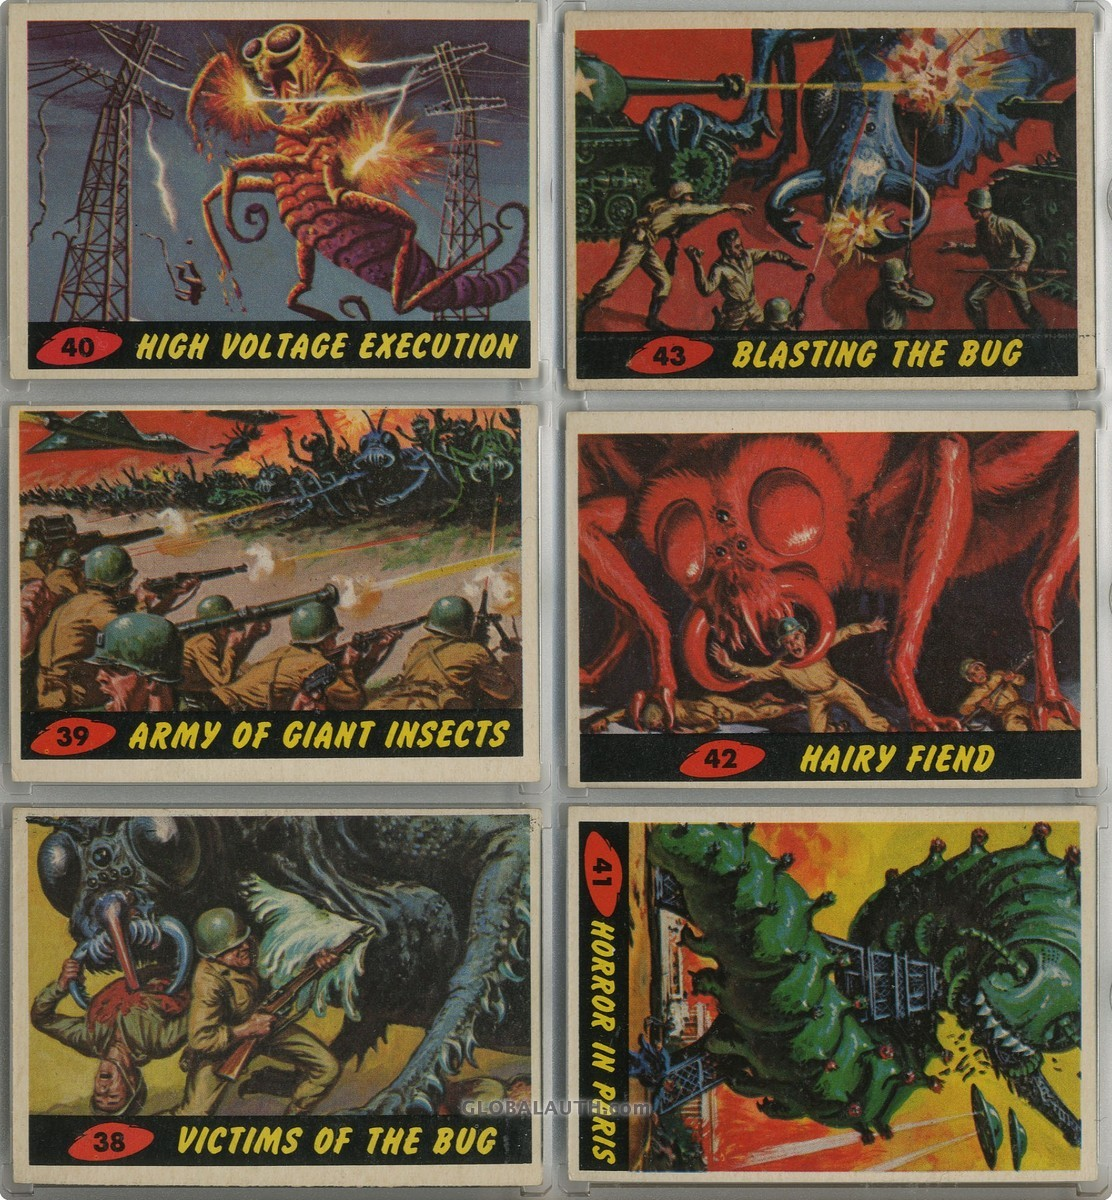 1962-mars-attacks-non-sports-card-set-set-images.jpg, #12